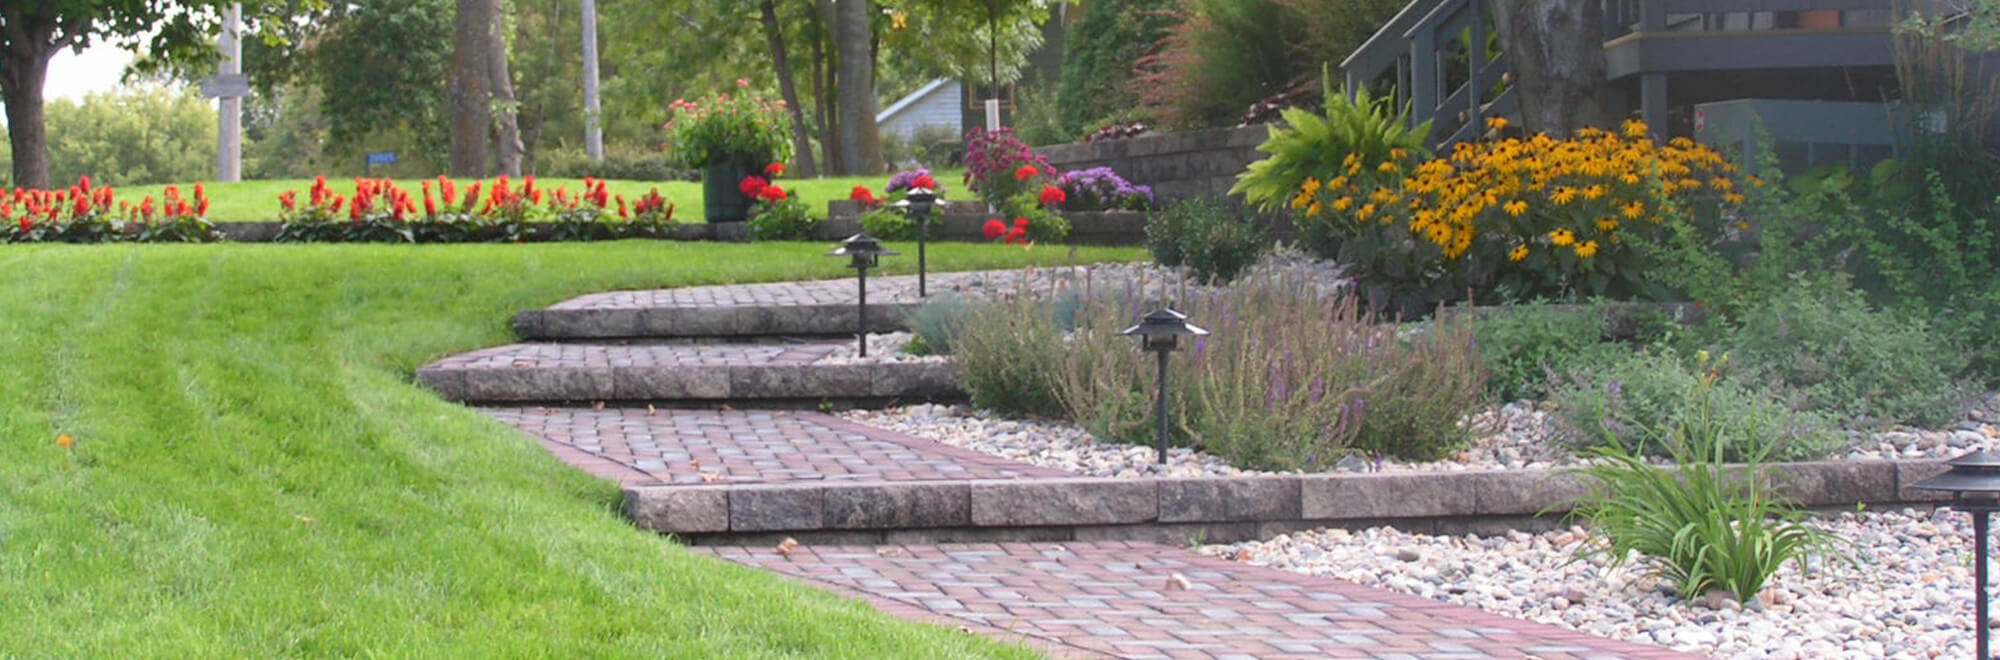 Home landscape complete with softscape flower gardens and stone paver steps